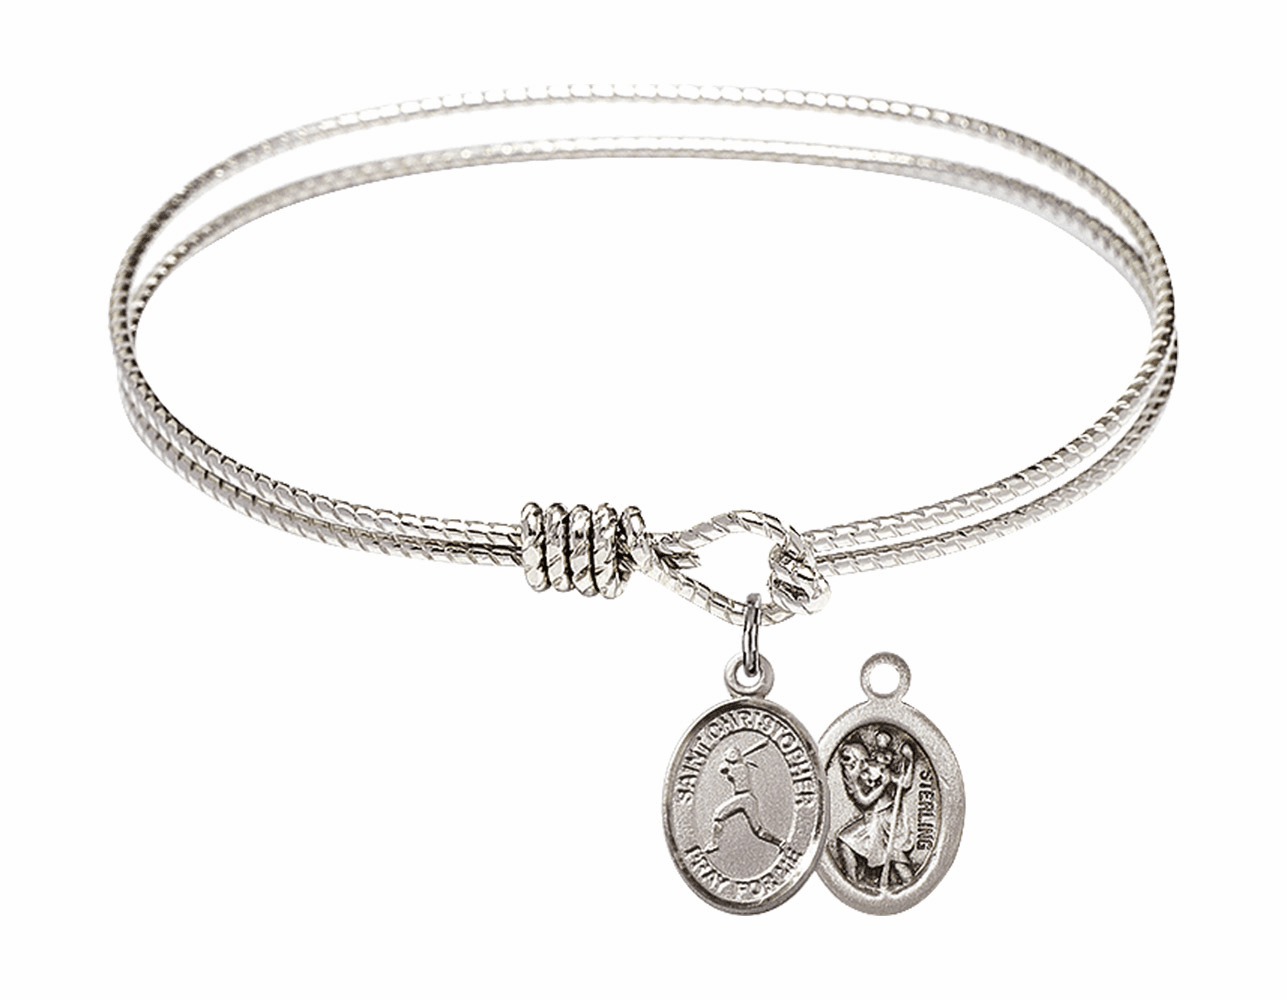 Twist Round Eye Hook St Christopher Softball Bangle Charm Bracelet by Bliss